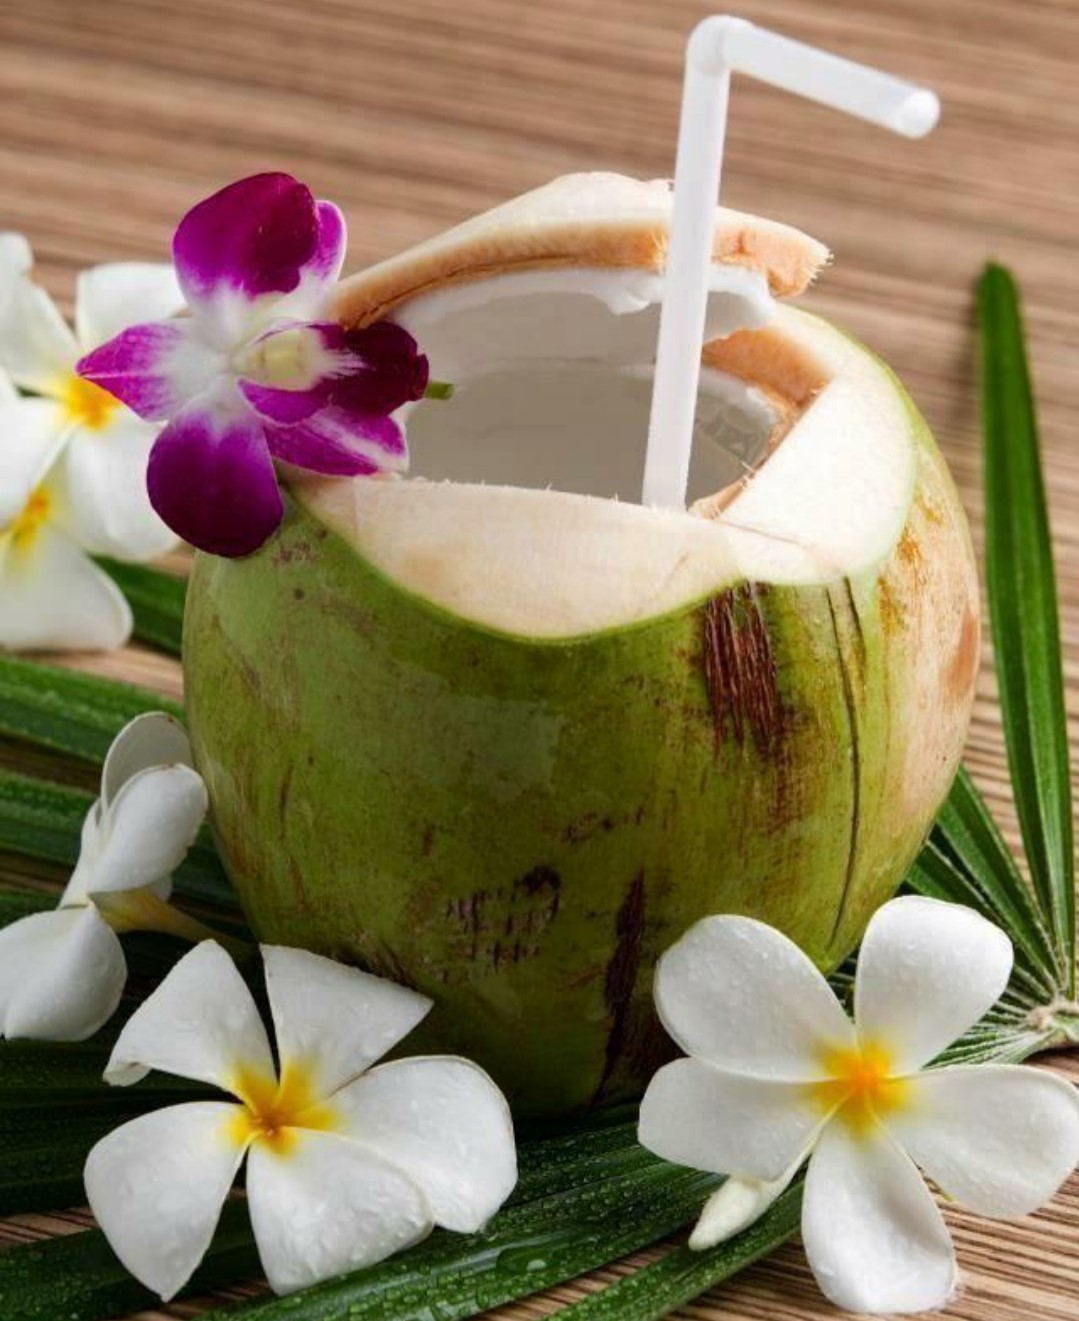 straw and flowers in coconut